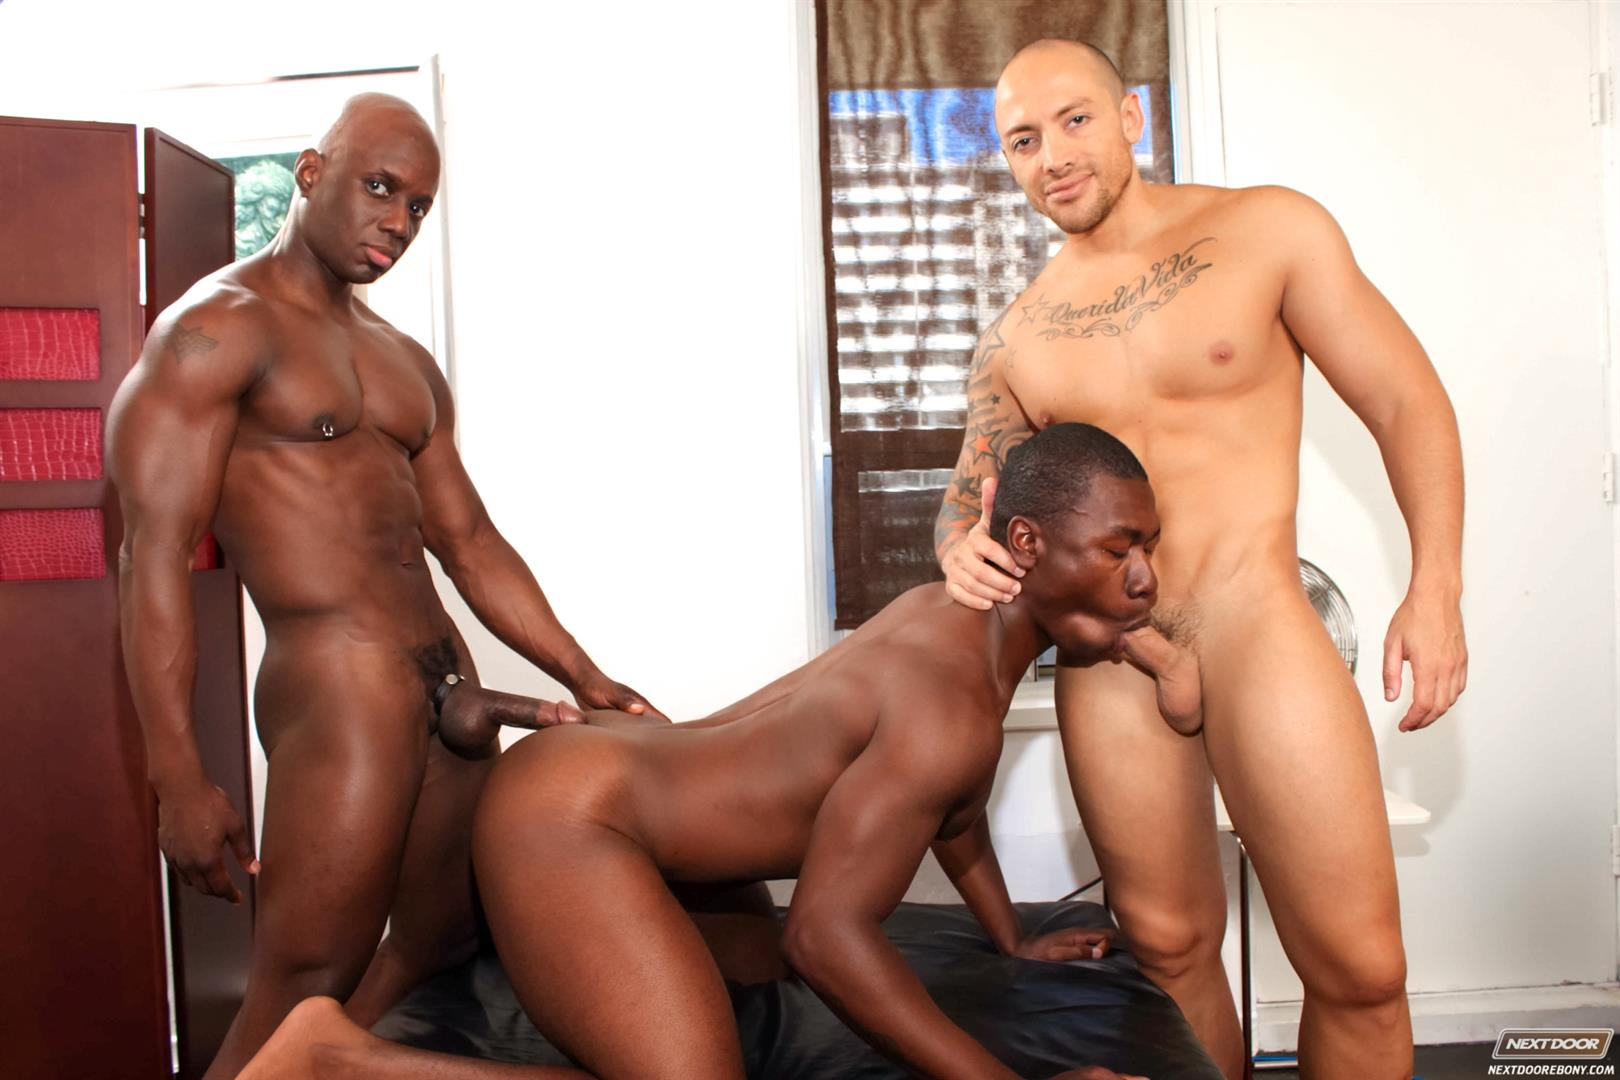 Interracial gay three way